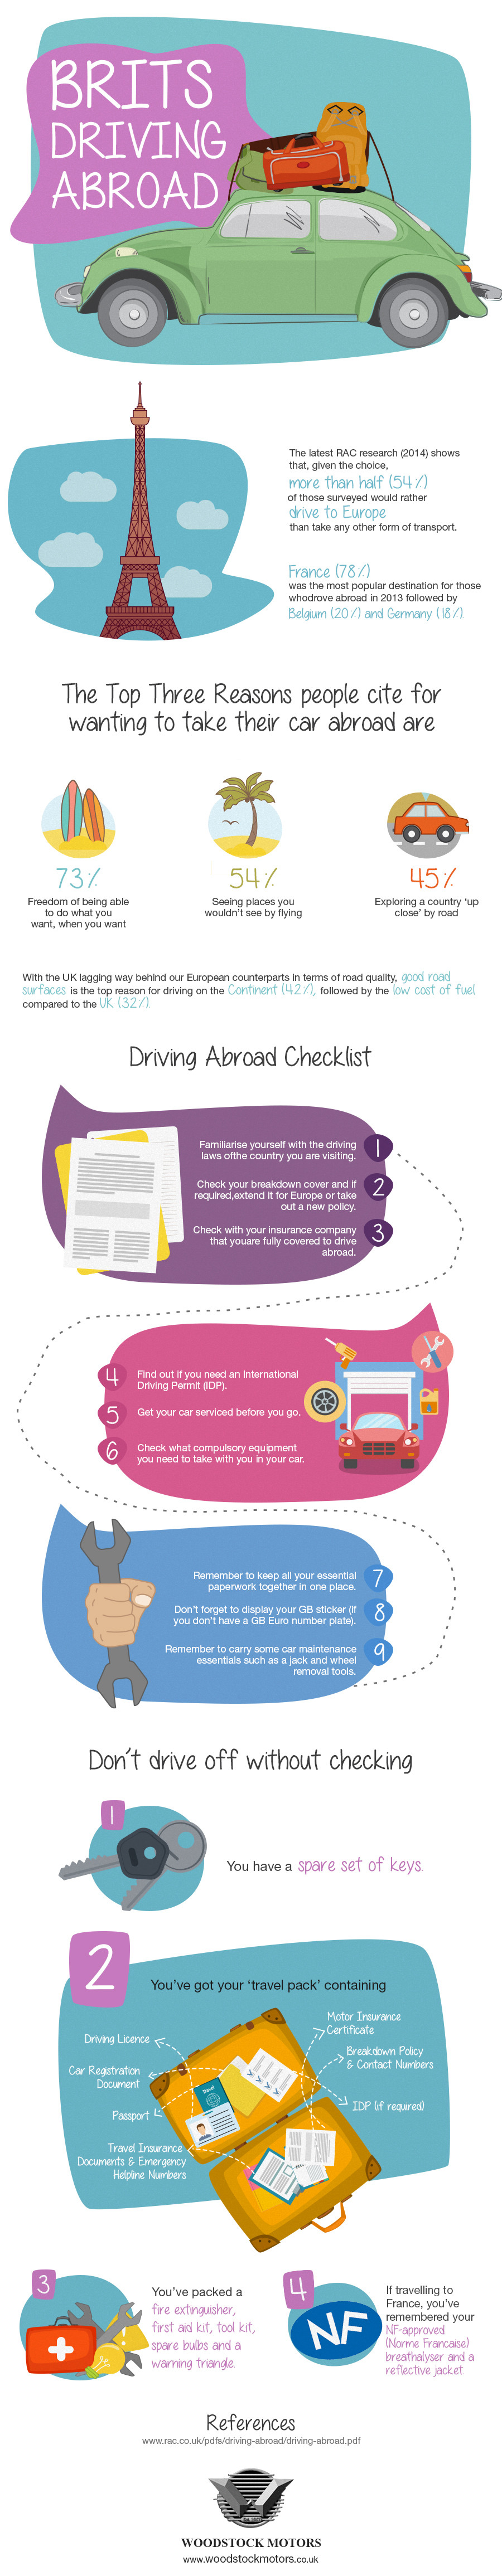 Brits Driving Abroad Infographic